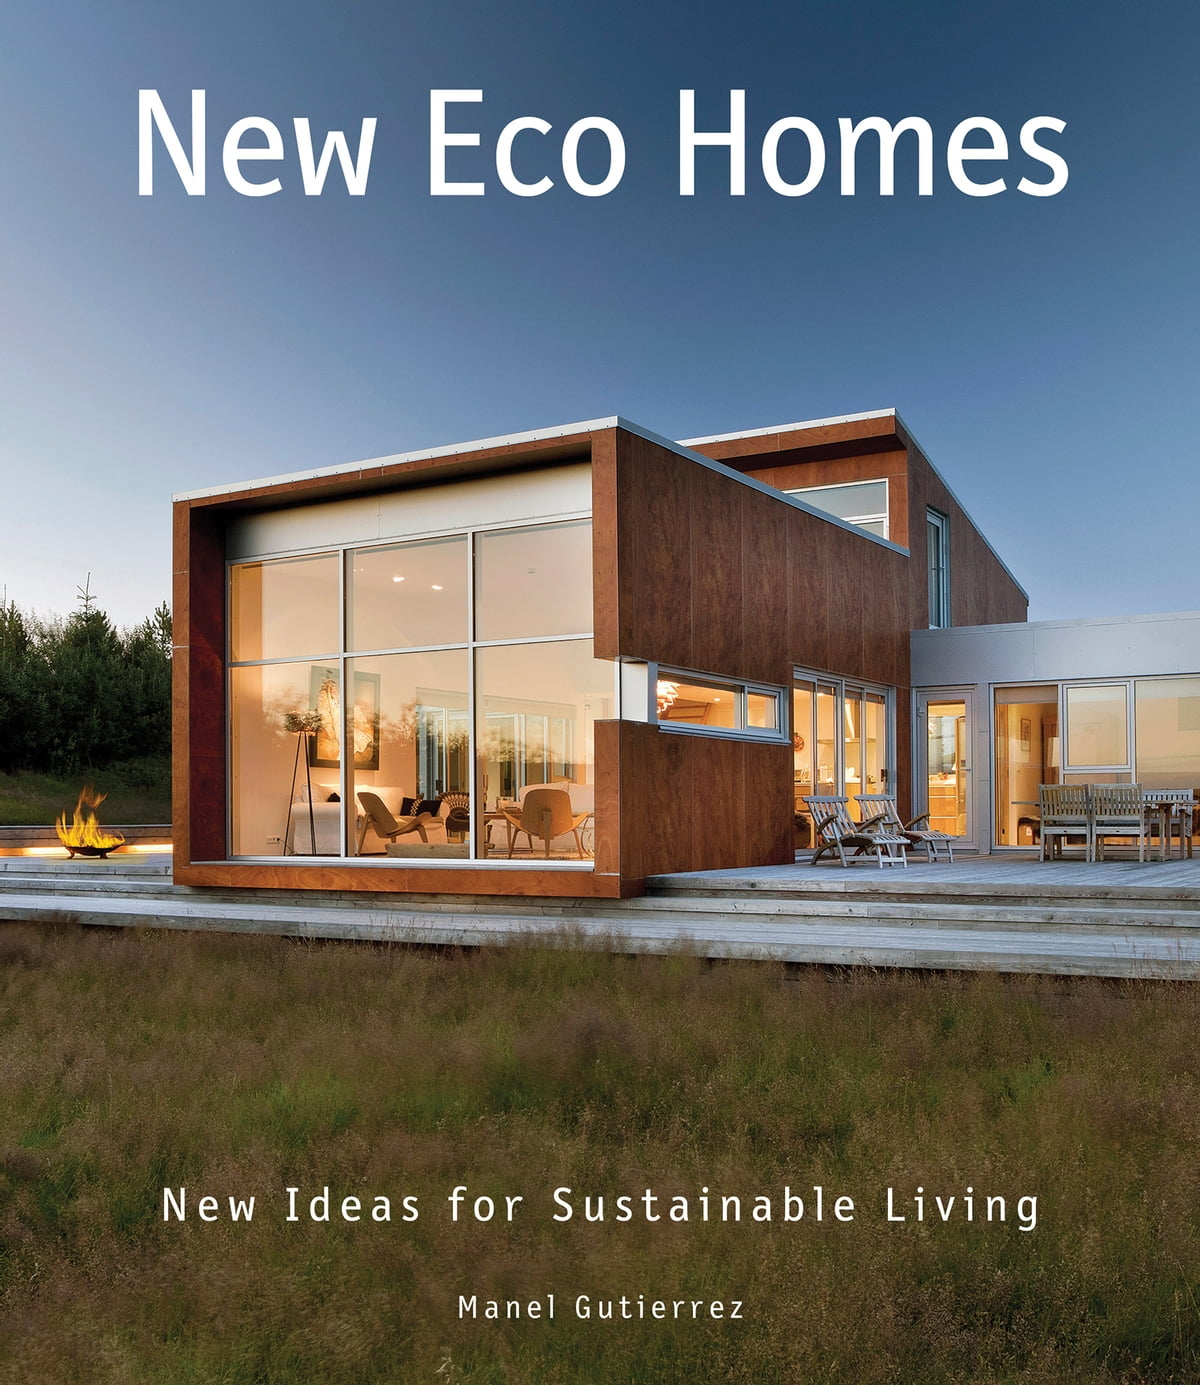 Home Staging Metz new eco homes ebookmanel gutierrez - rakuten kobo